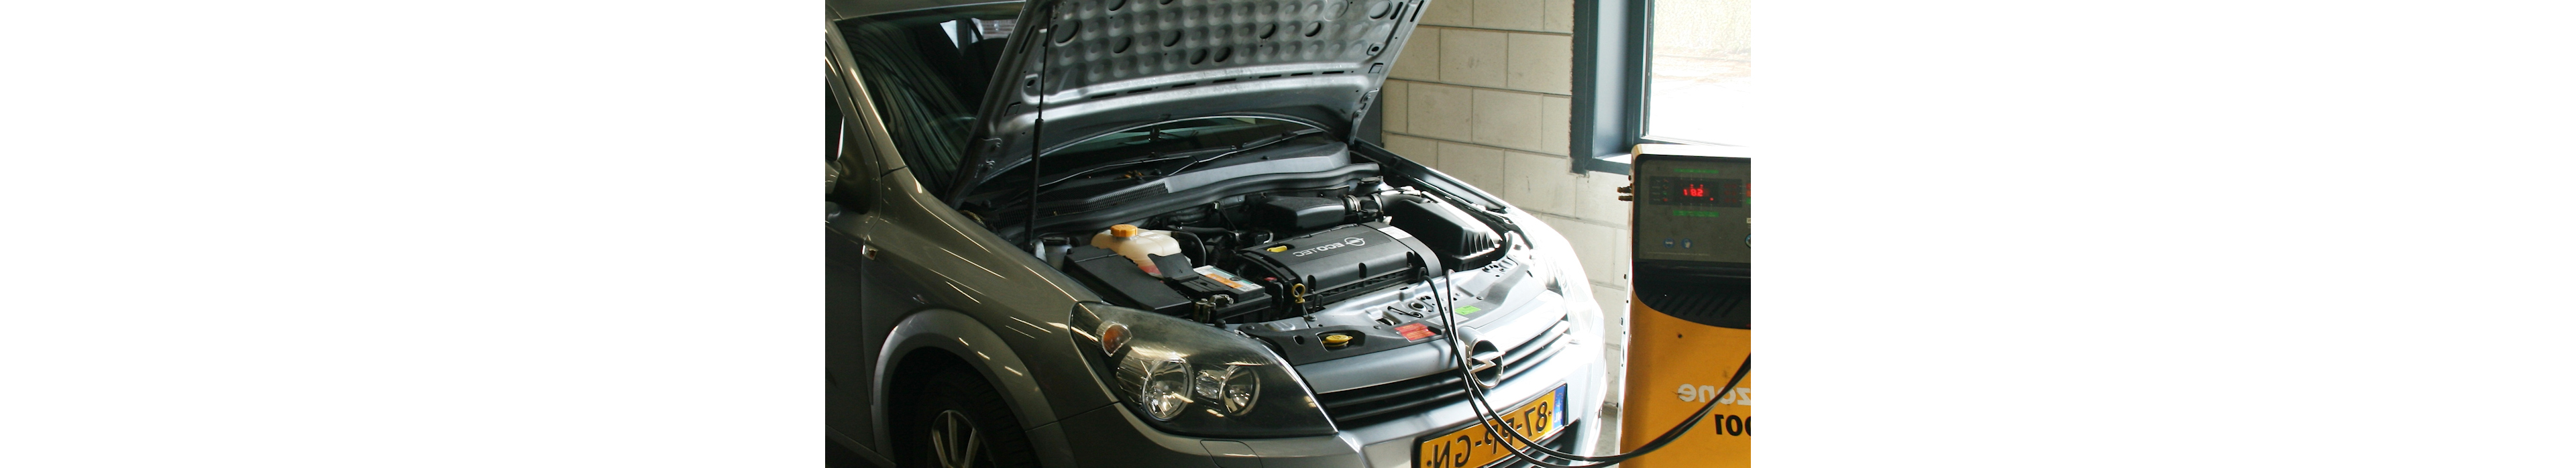 Airco service vullen auto www.carcoolsystems.nl